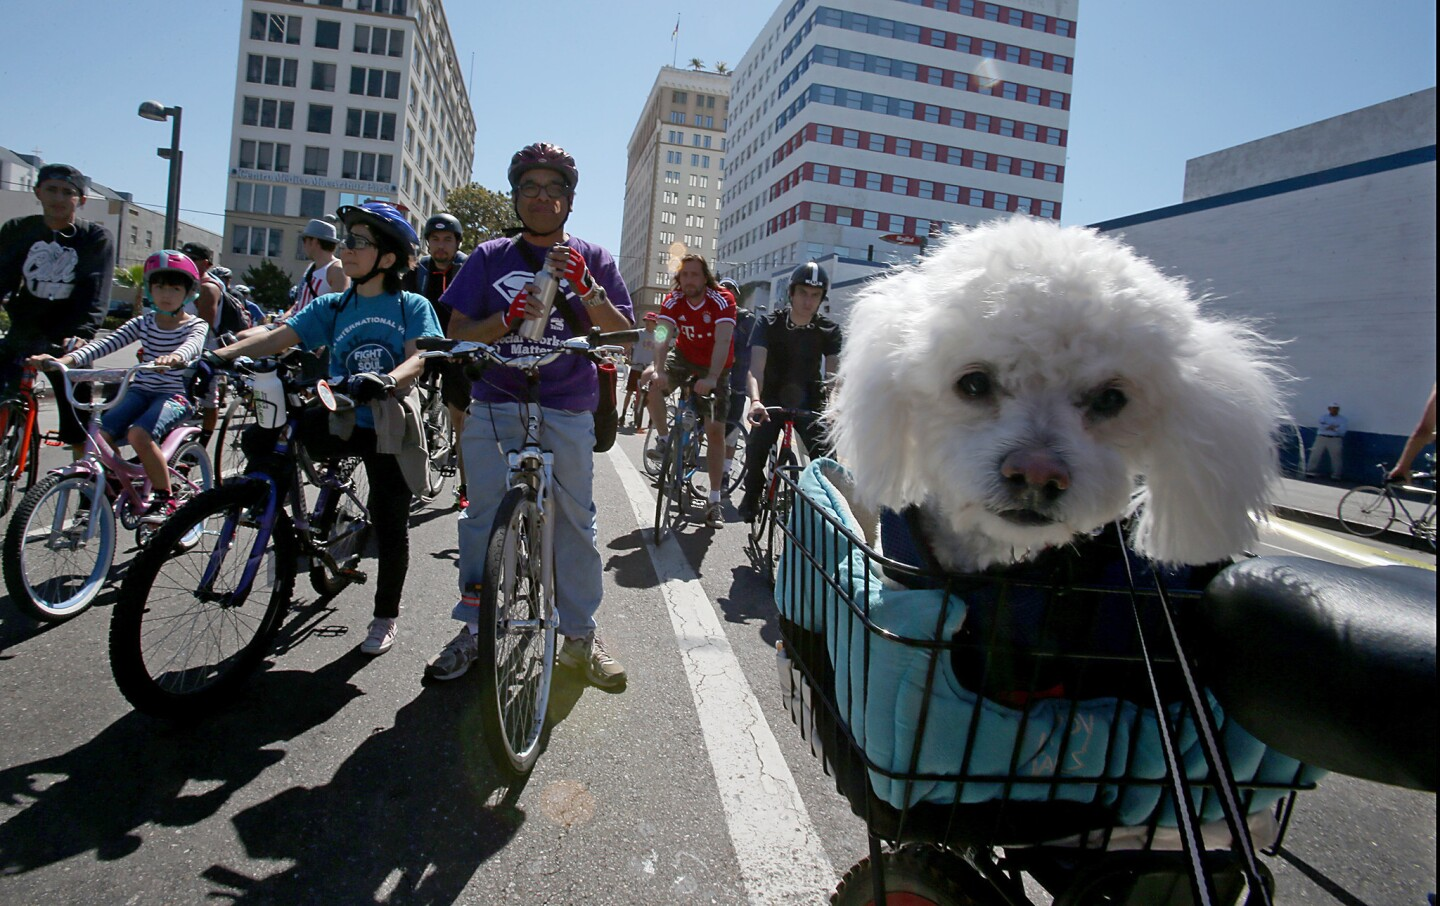 A pooch named Henry hitches a ride for the annual CicLAvia bike festival.